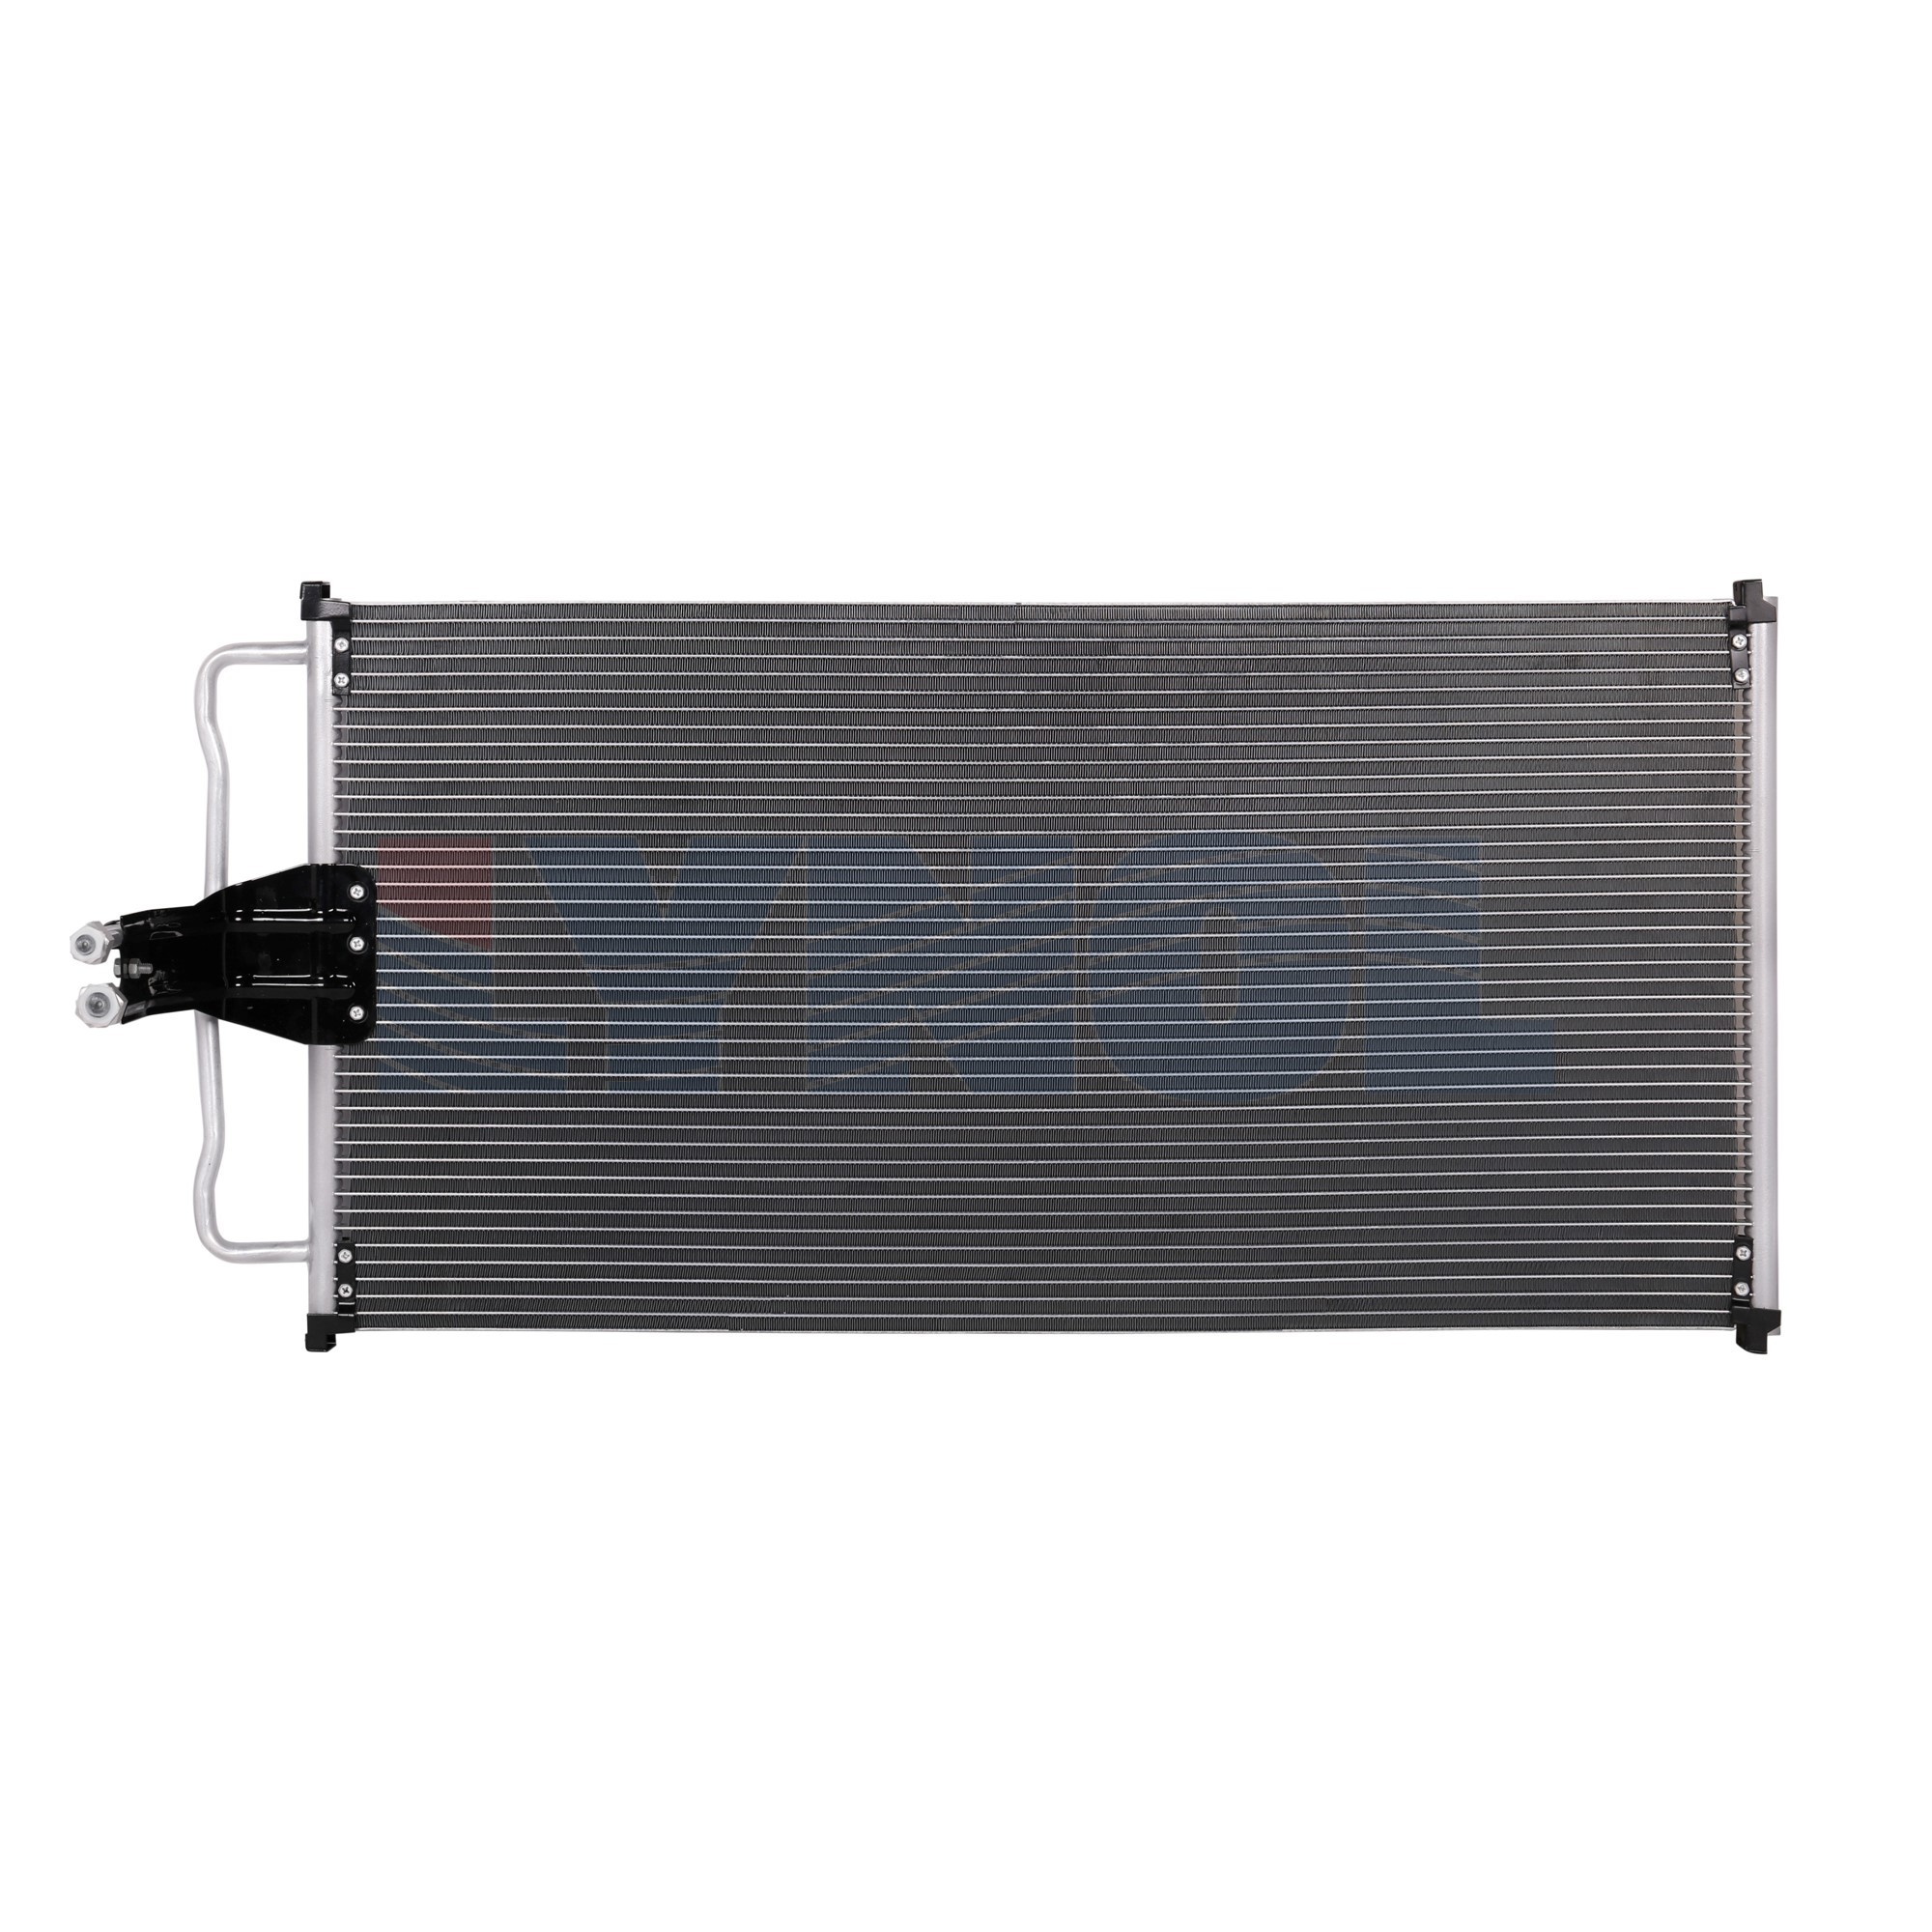 AC3092 - AC Condensers  - 04-08 Ford F-150 F-250, Lincoln Mark LT